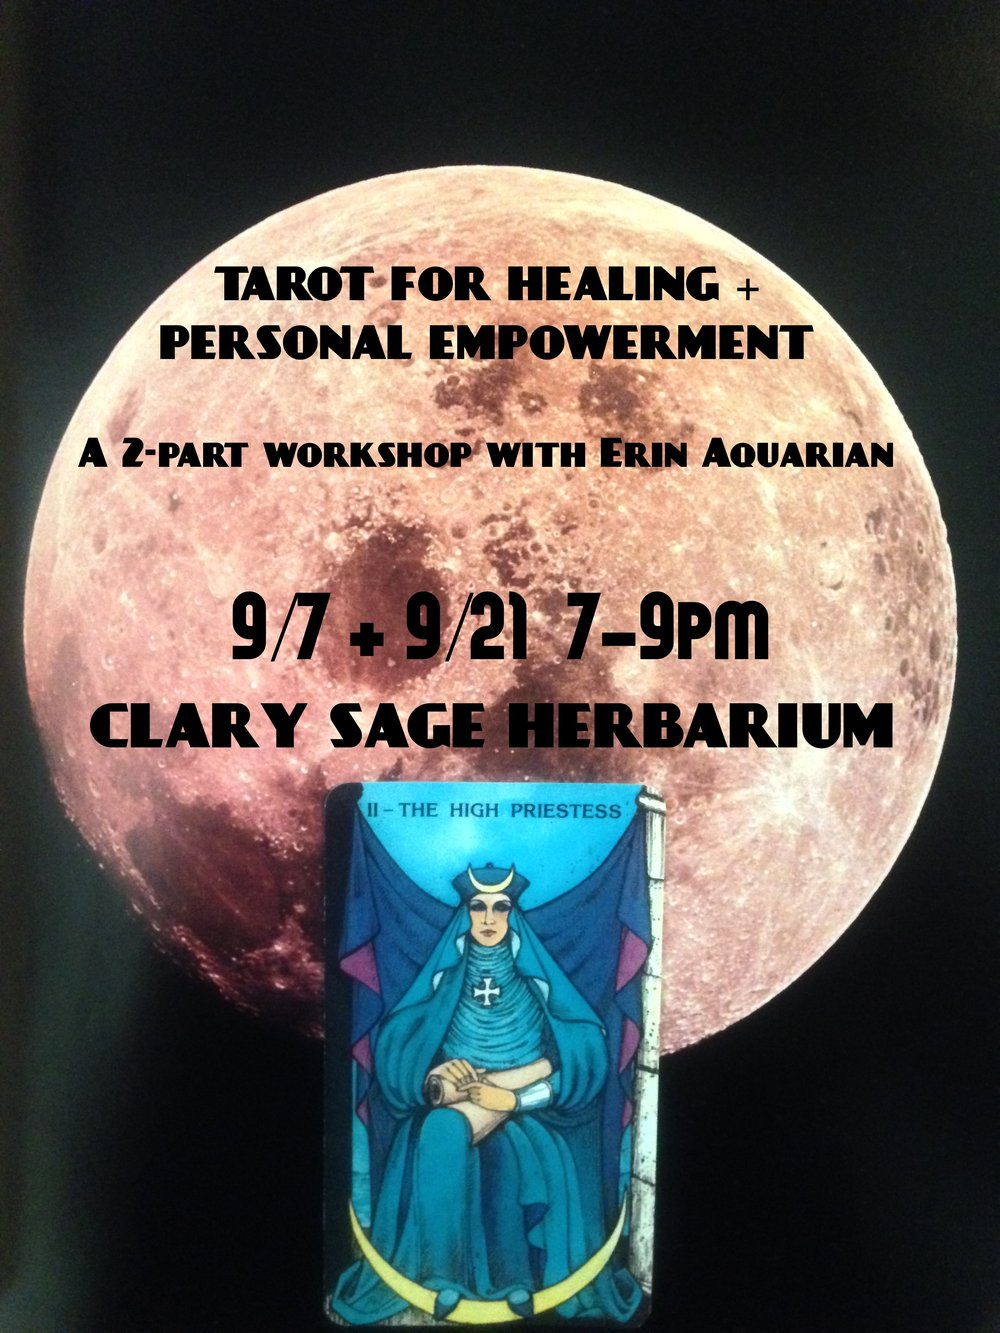 Register @ eventbrite.com/e/tarot-for-healing-empowerment-part-1-tickets-27290725294